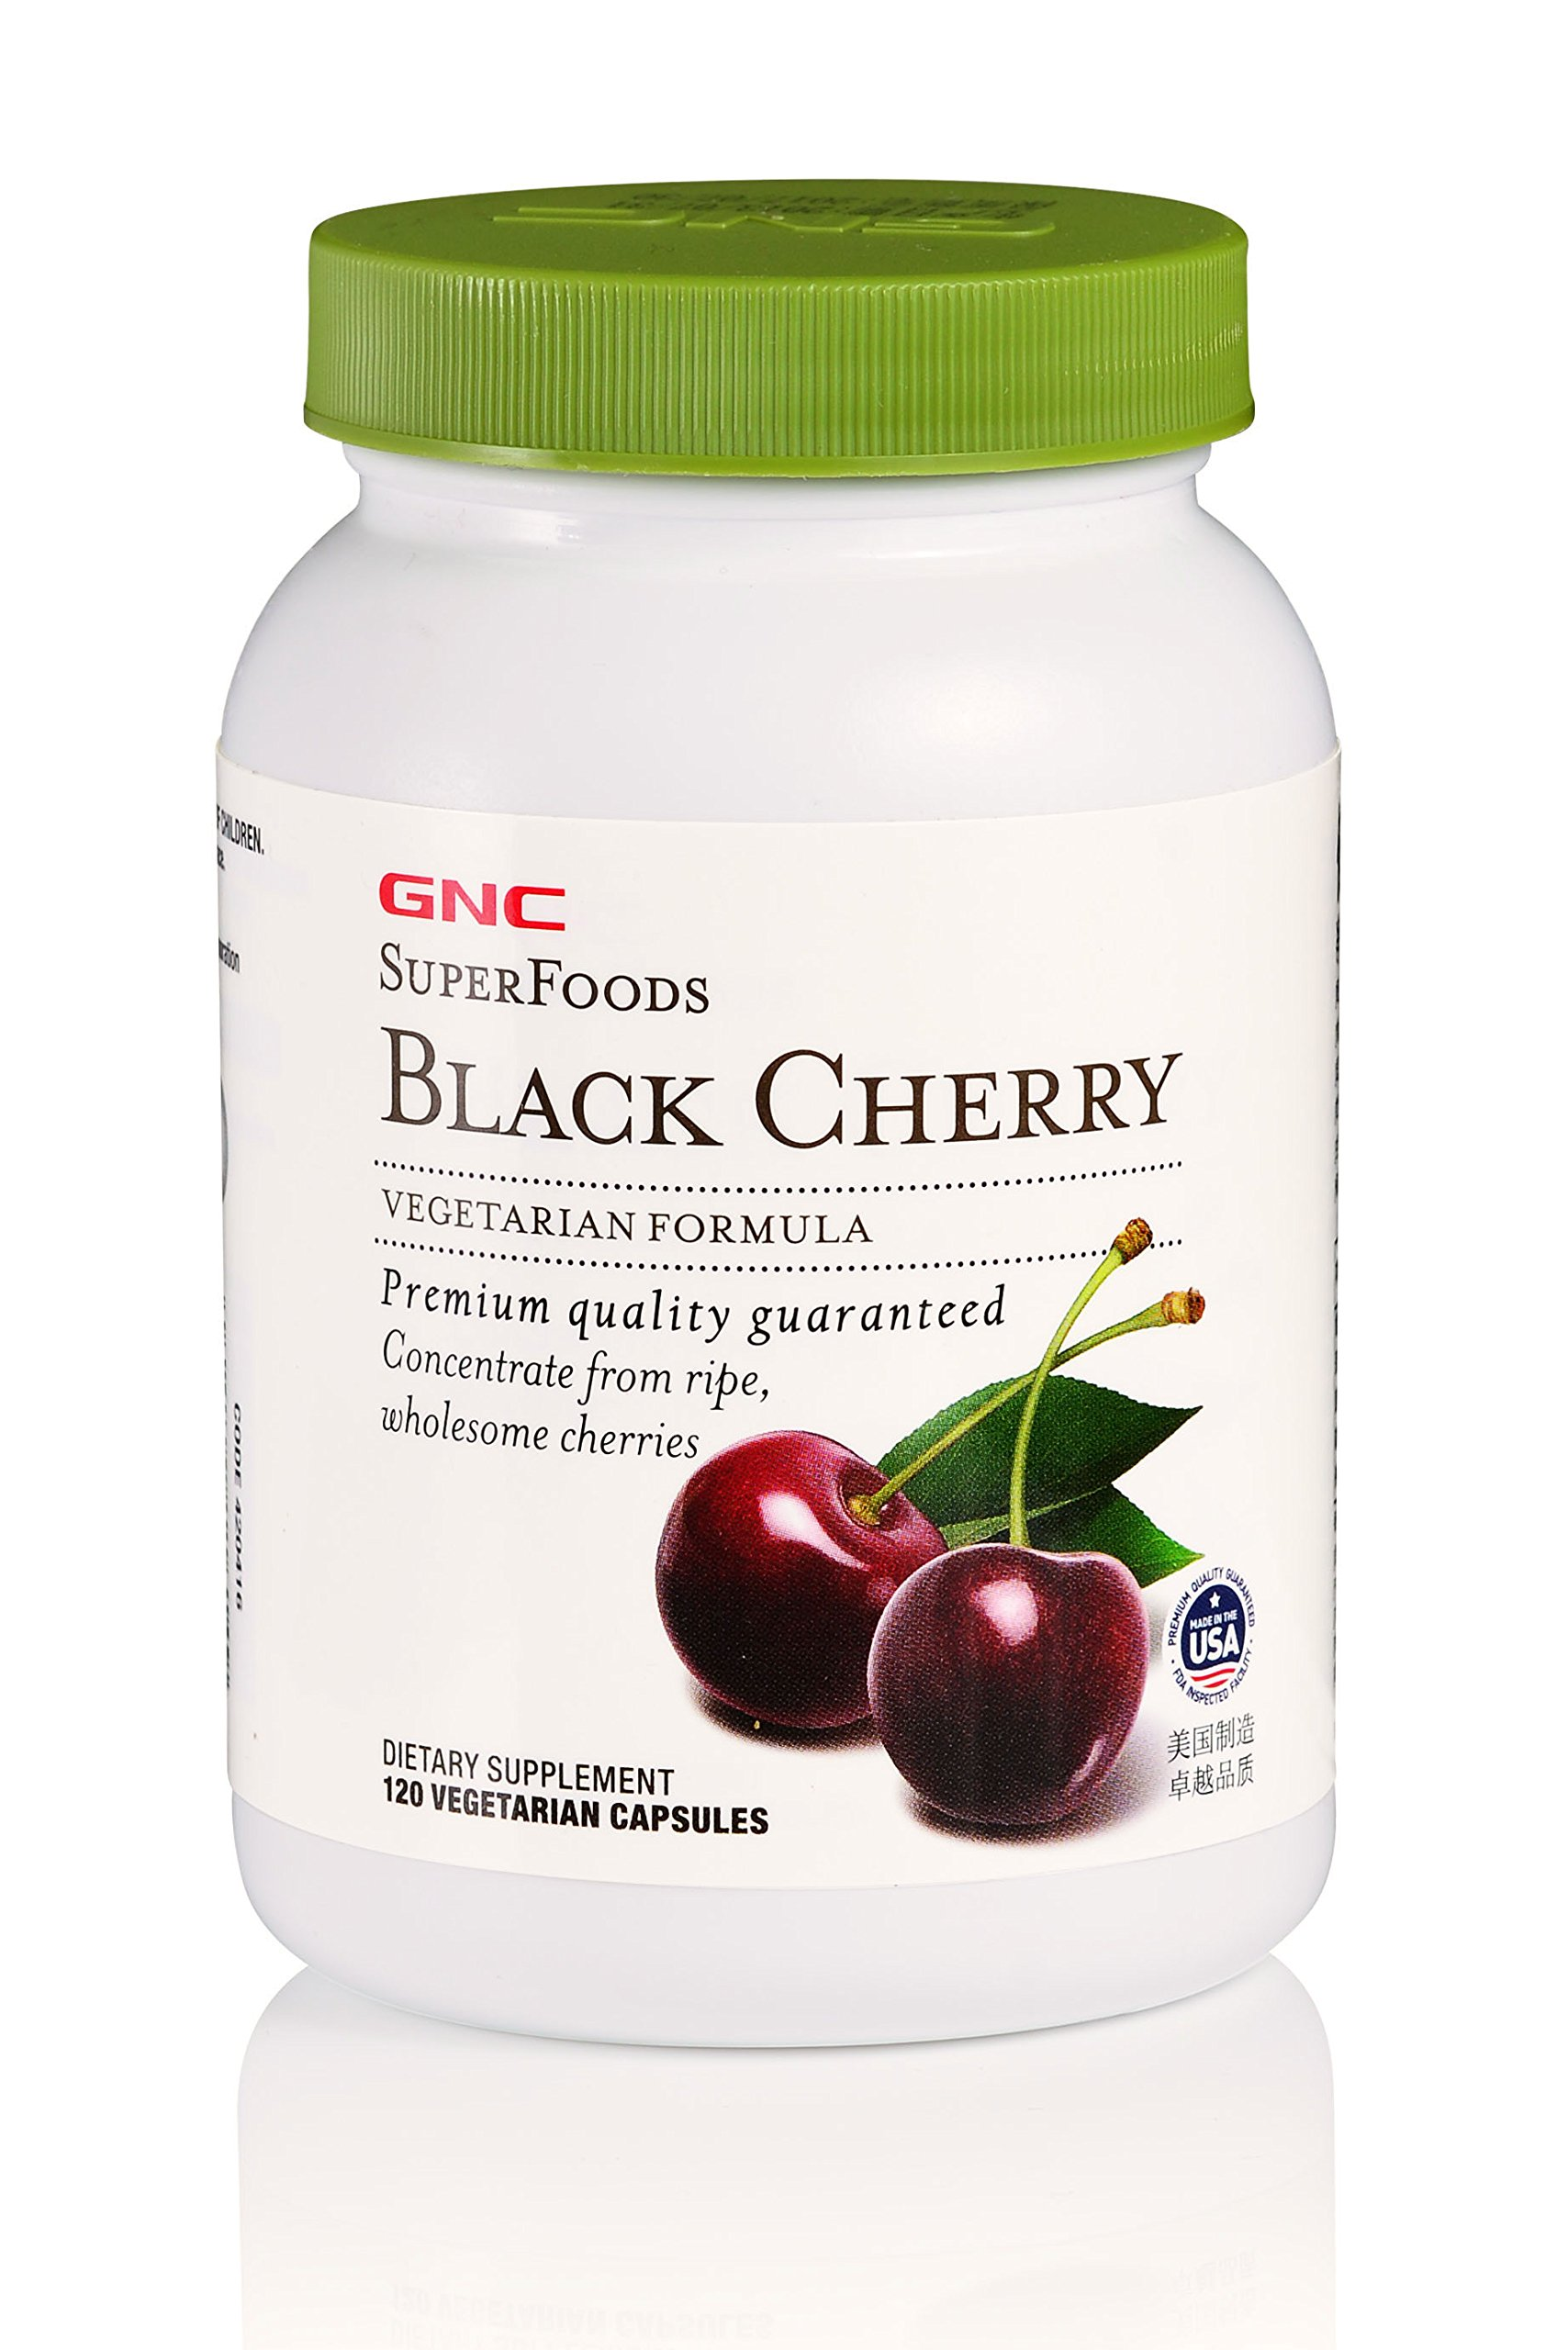 30 Days Of Superfoods: Tart Cherries For Pain Relief recommend